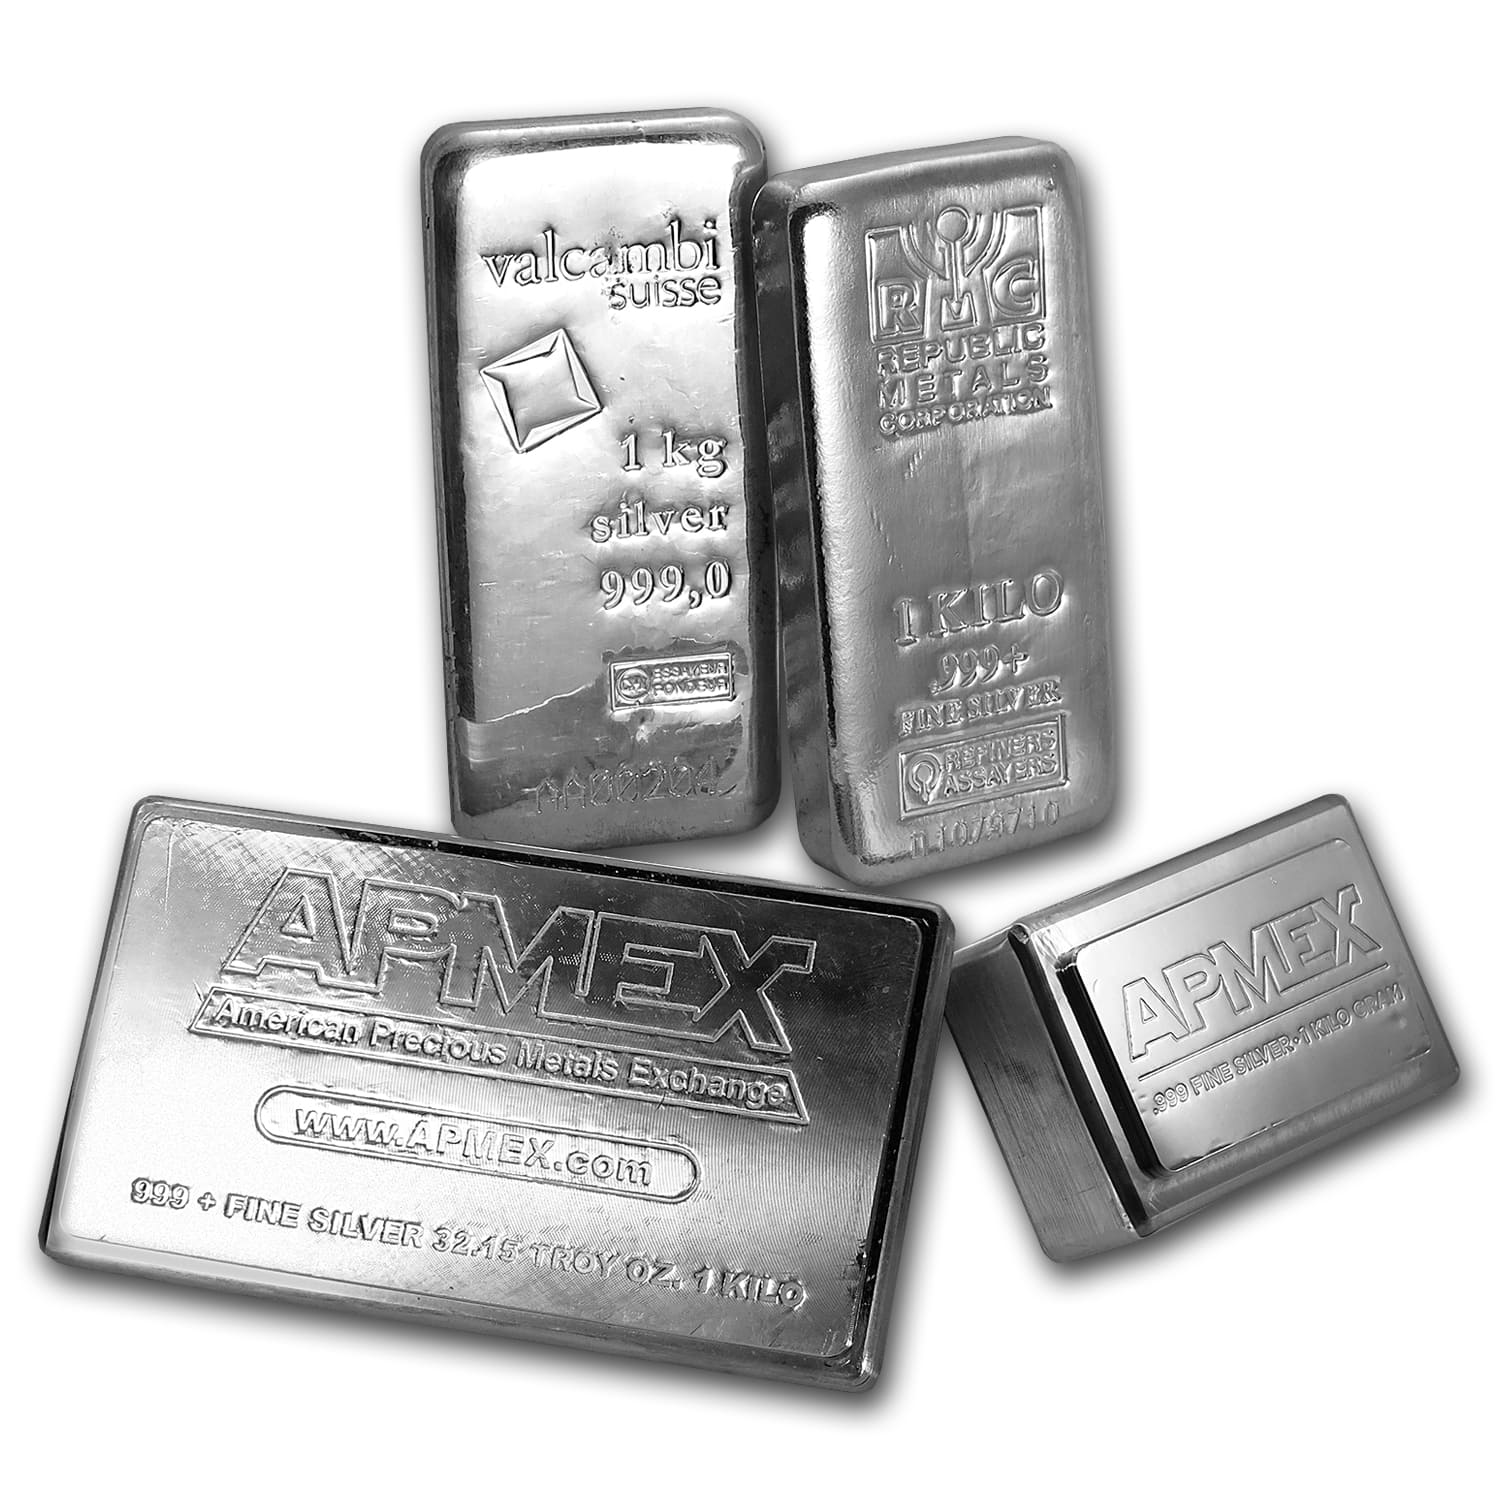 1 Kilo Silver Bar - (Secondary Market)